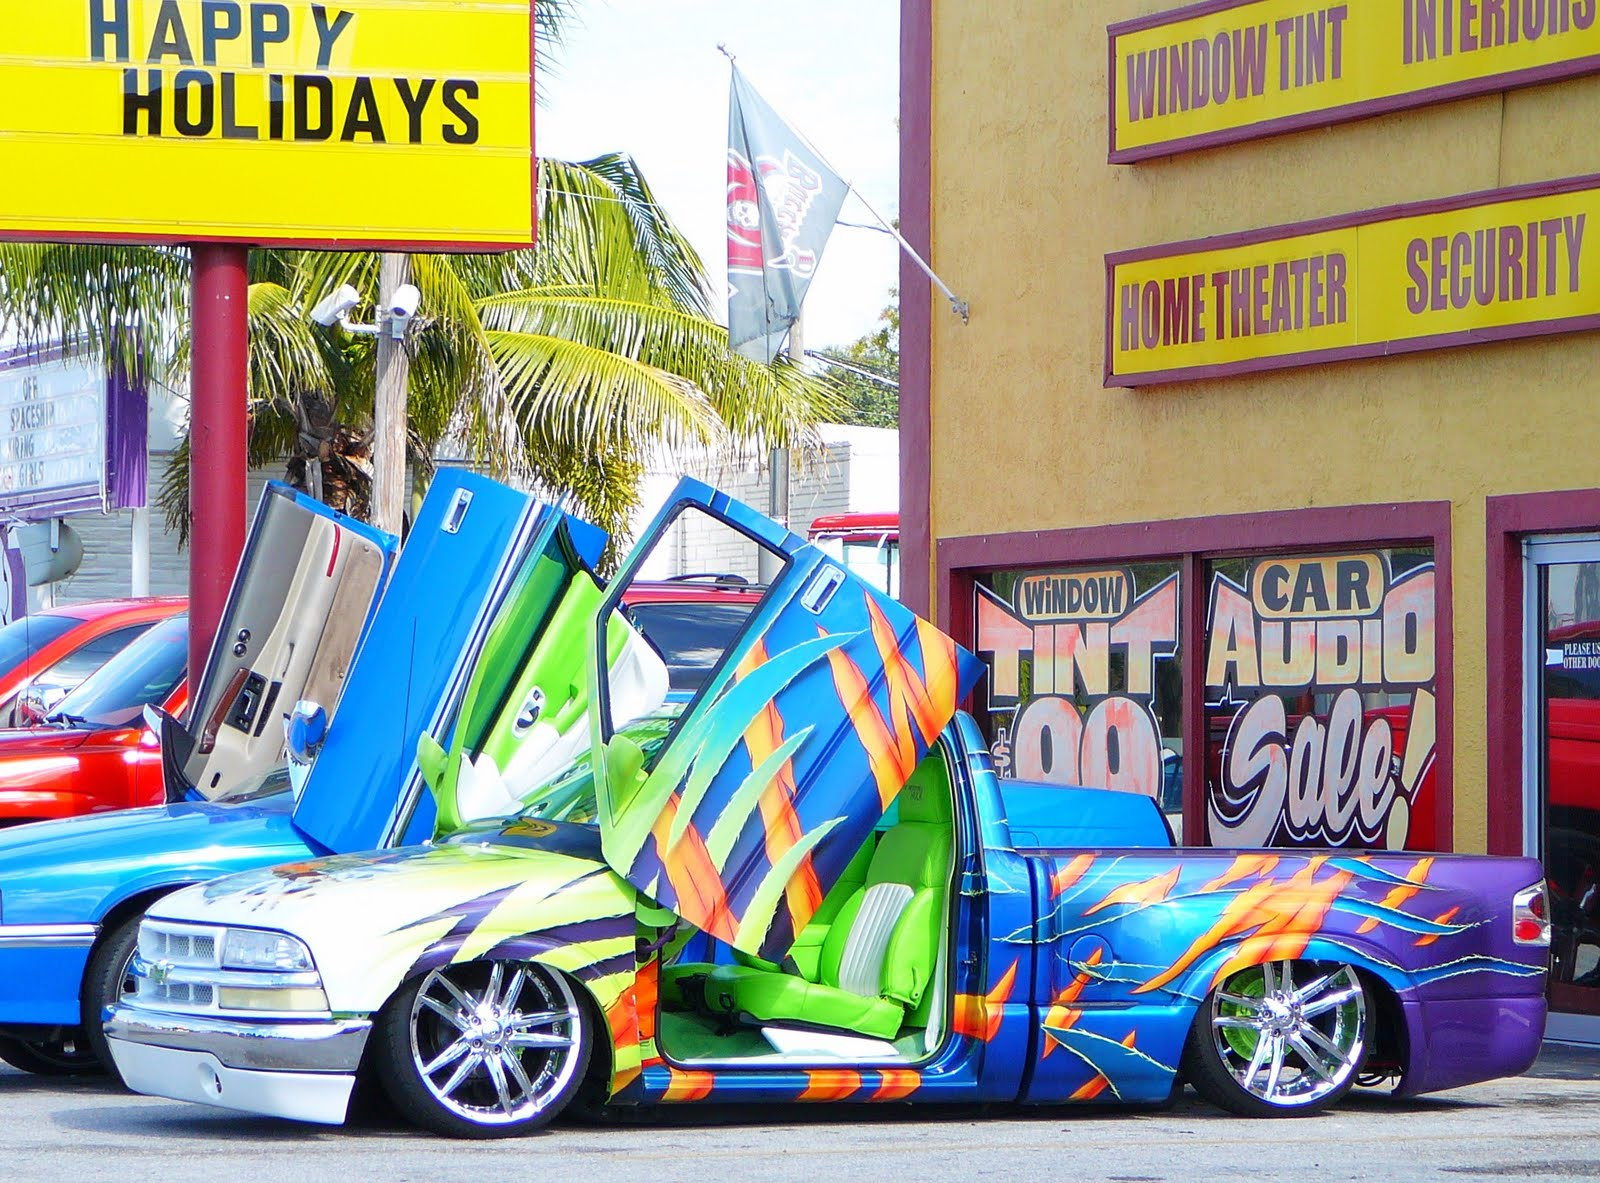 Stuff a lowrider in a stocking